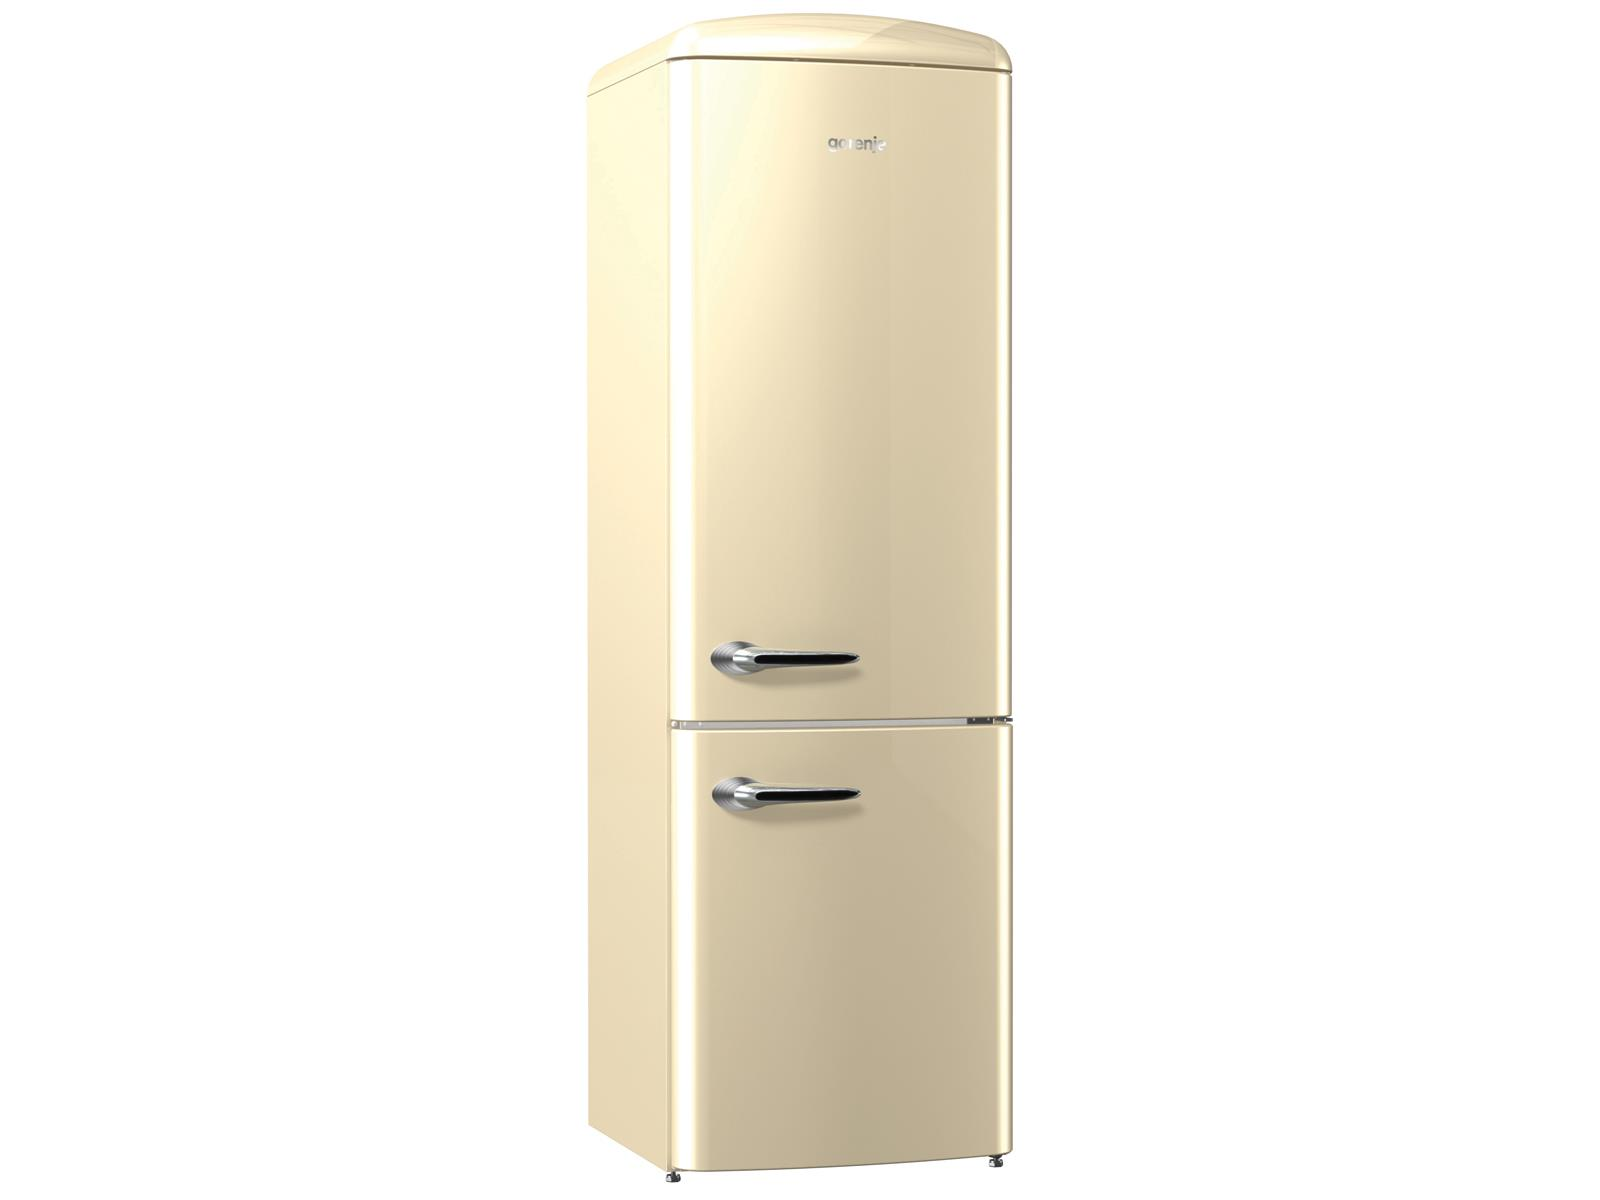 gorenje ork 193 c stand k hl gefrier kombination champagne k hlschrank beige ebay. Black Bedroom Furniture Sets. Home Design Ideas